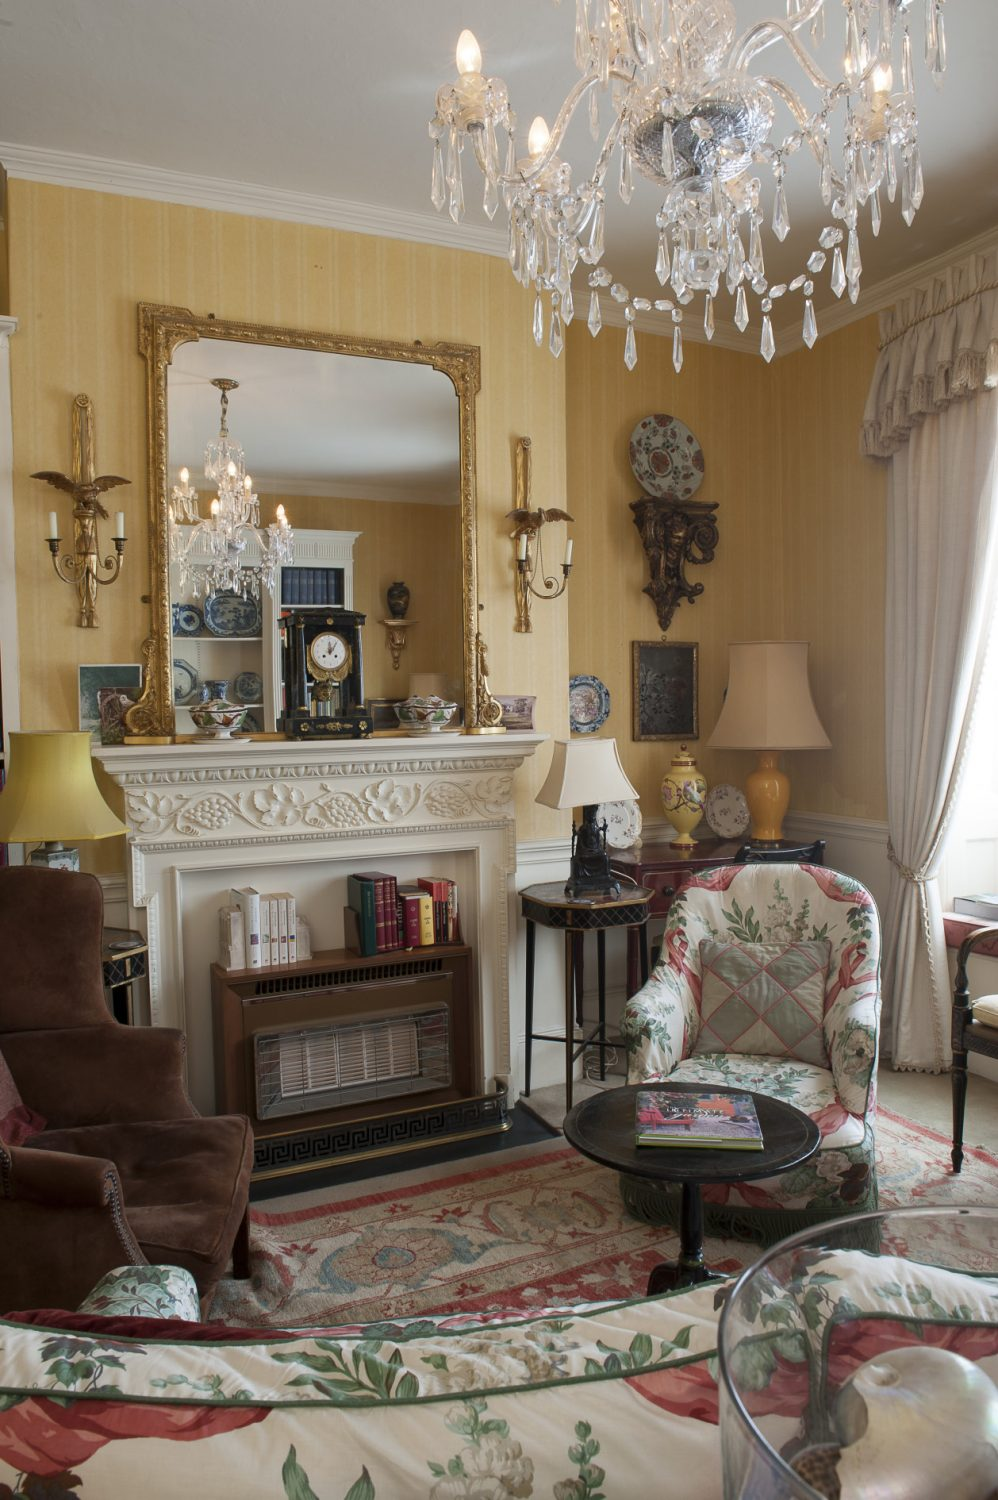 The walls have been covered in a warm yellow Colefax & Fowler stripe and the heavy herringbone patterned linen curtains reinforce the sense of discreet luxury